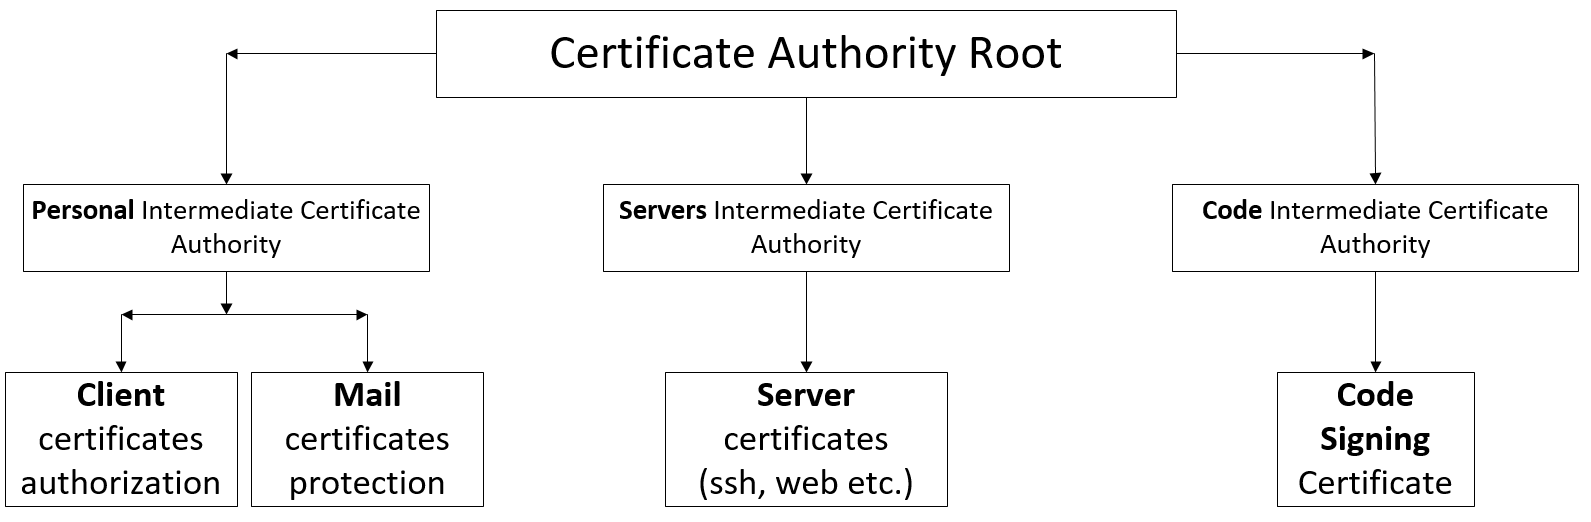 От Root CA до User Authorization в nginx+apache. Часть 1. Создаем Root&Intermediate Certificate Authority - 1